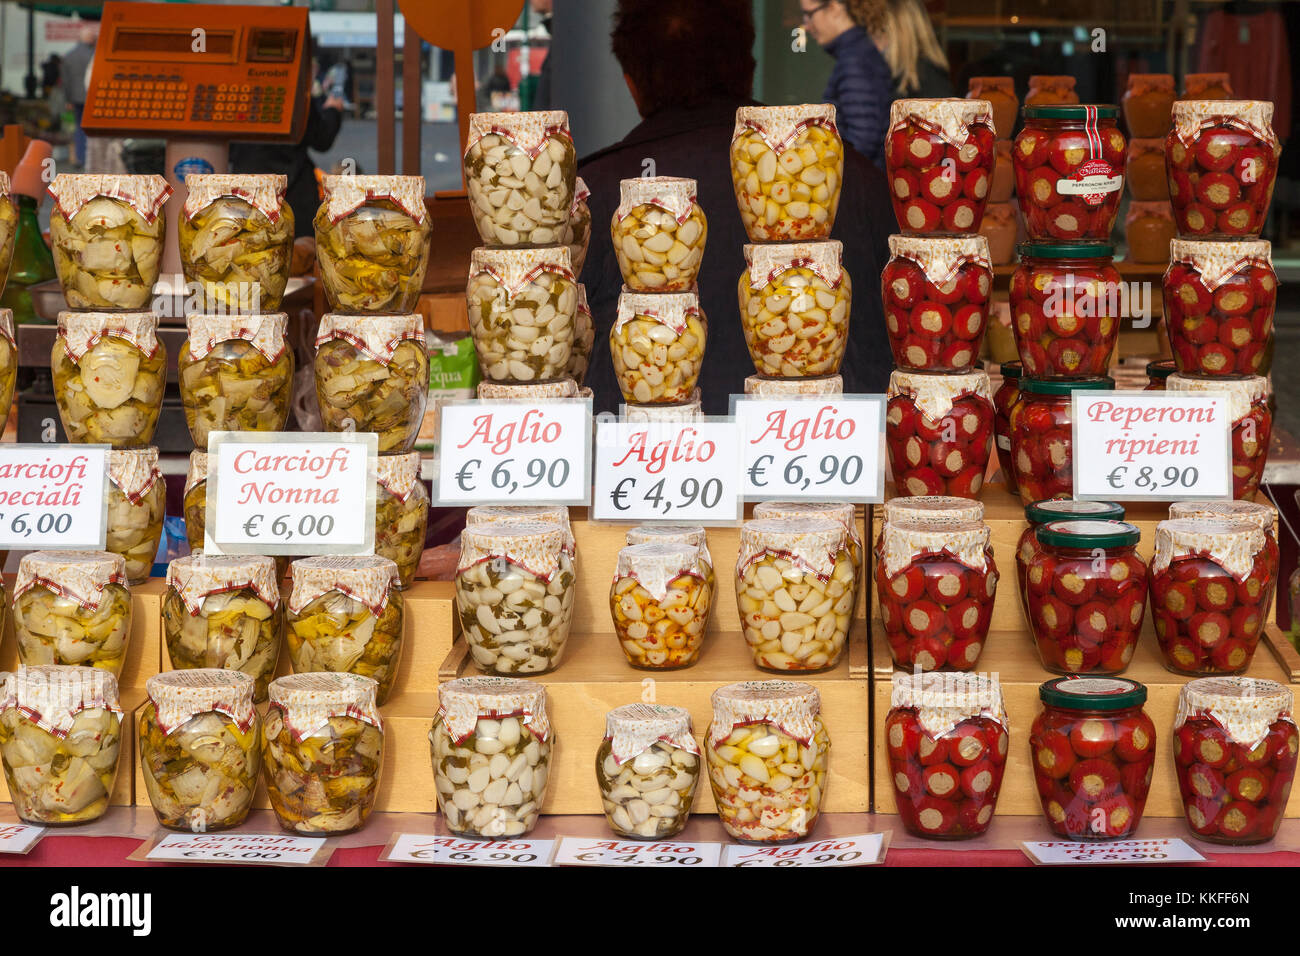 d8622be53d98 Display of speciality Italian potted vegetables in glass jars on ...